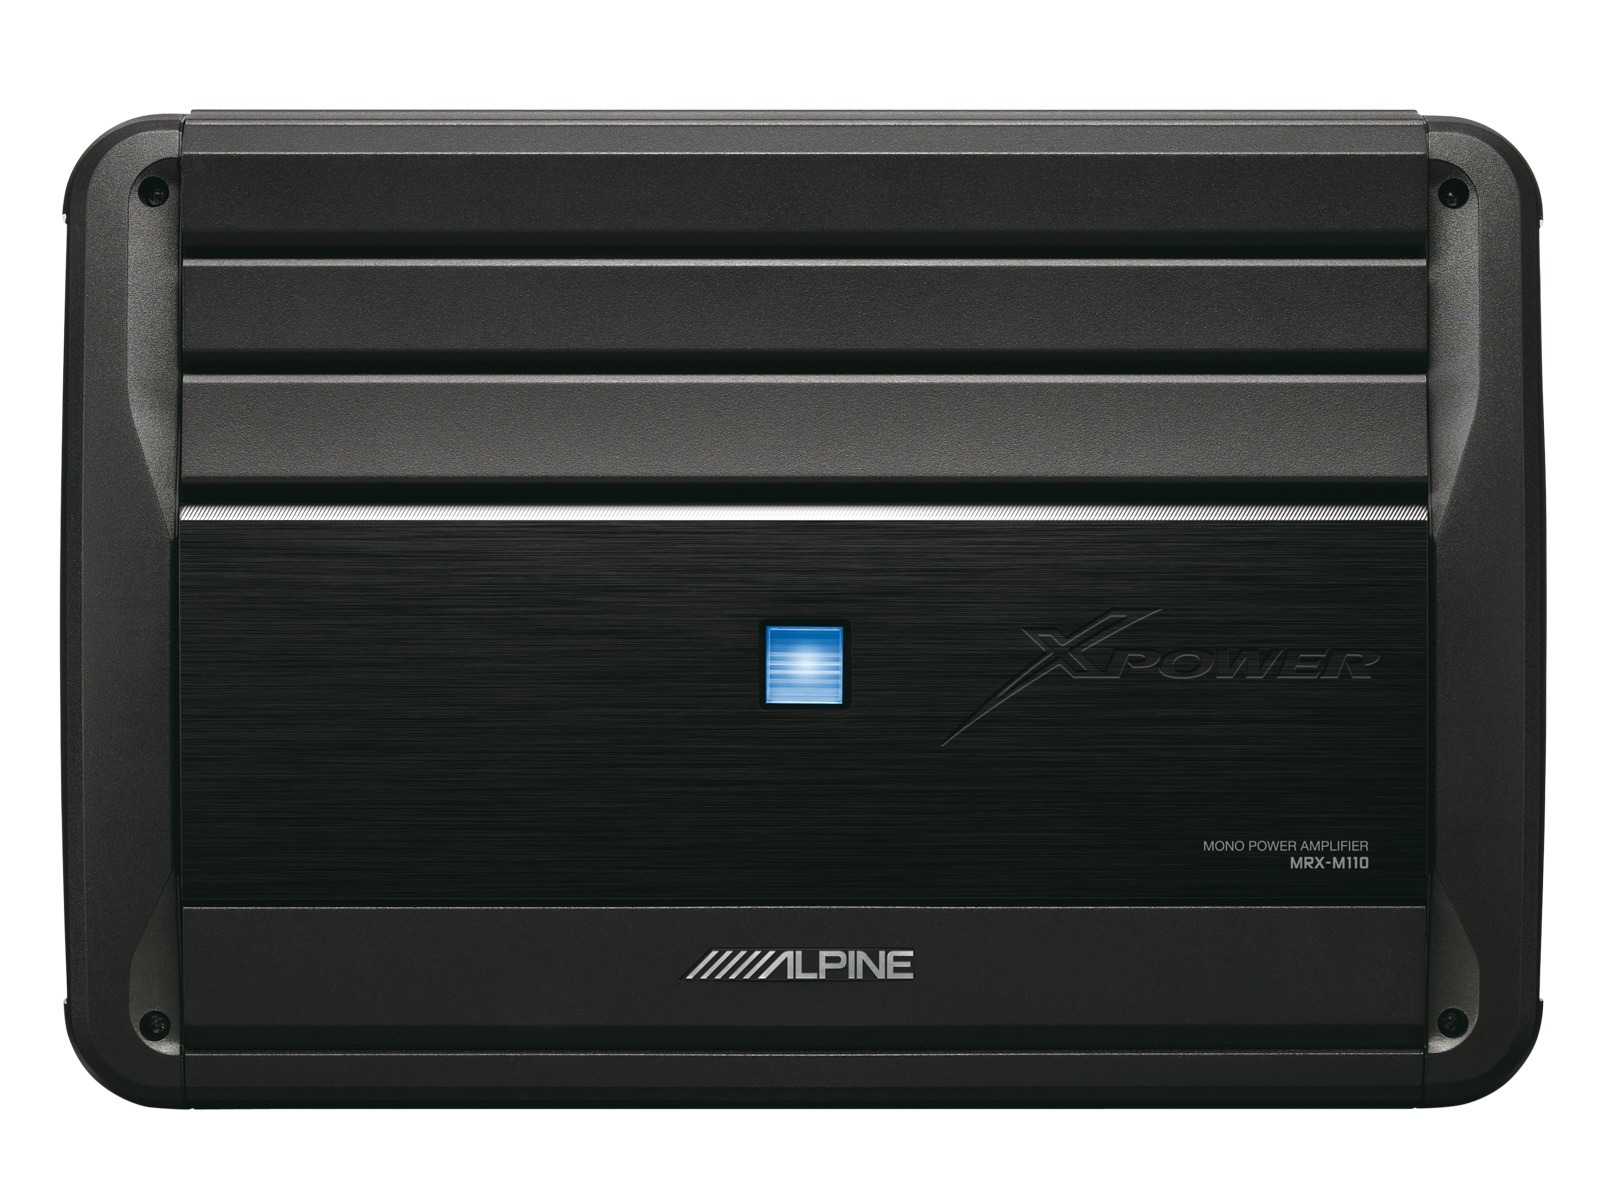 productpic_MRX M110_02 mono amplifier alpine mrx m110 Alpine MRX-M110 Specifications at webbmarketing.co